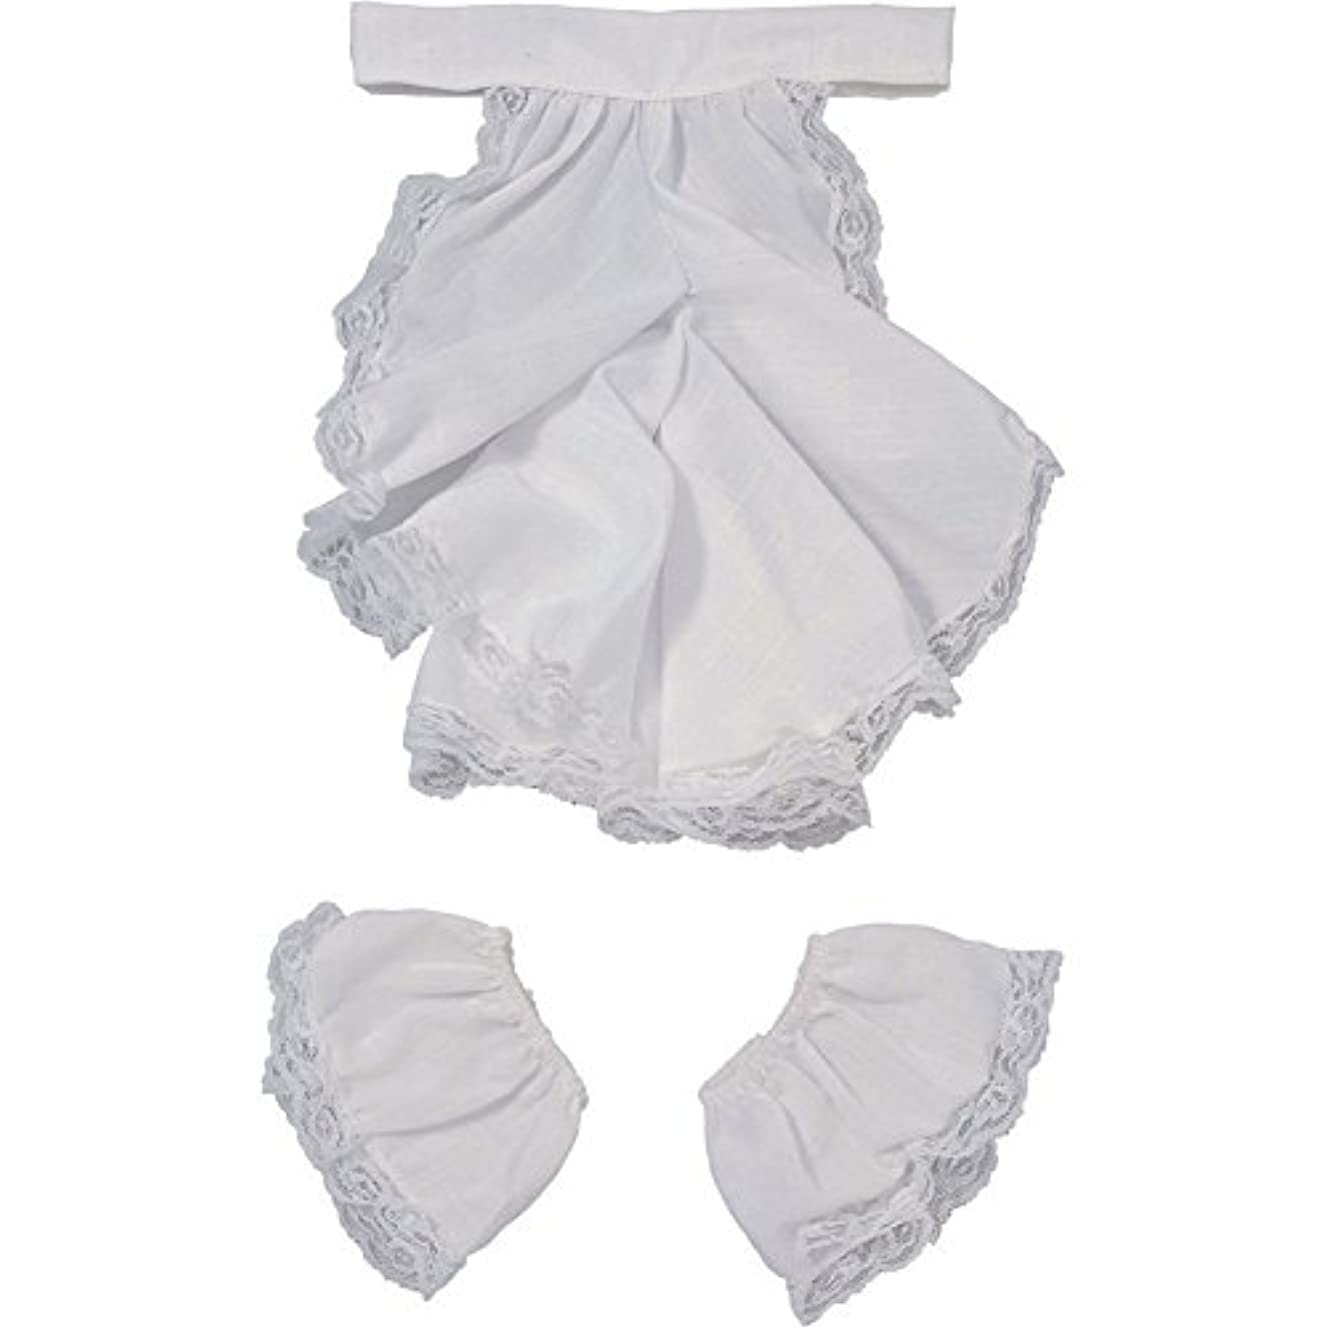 Victorian Jabot & Cuffs Lace Colonial Costume Set